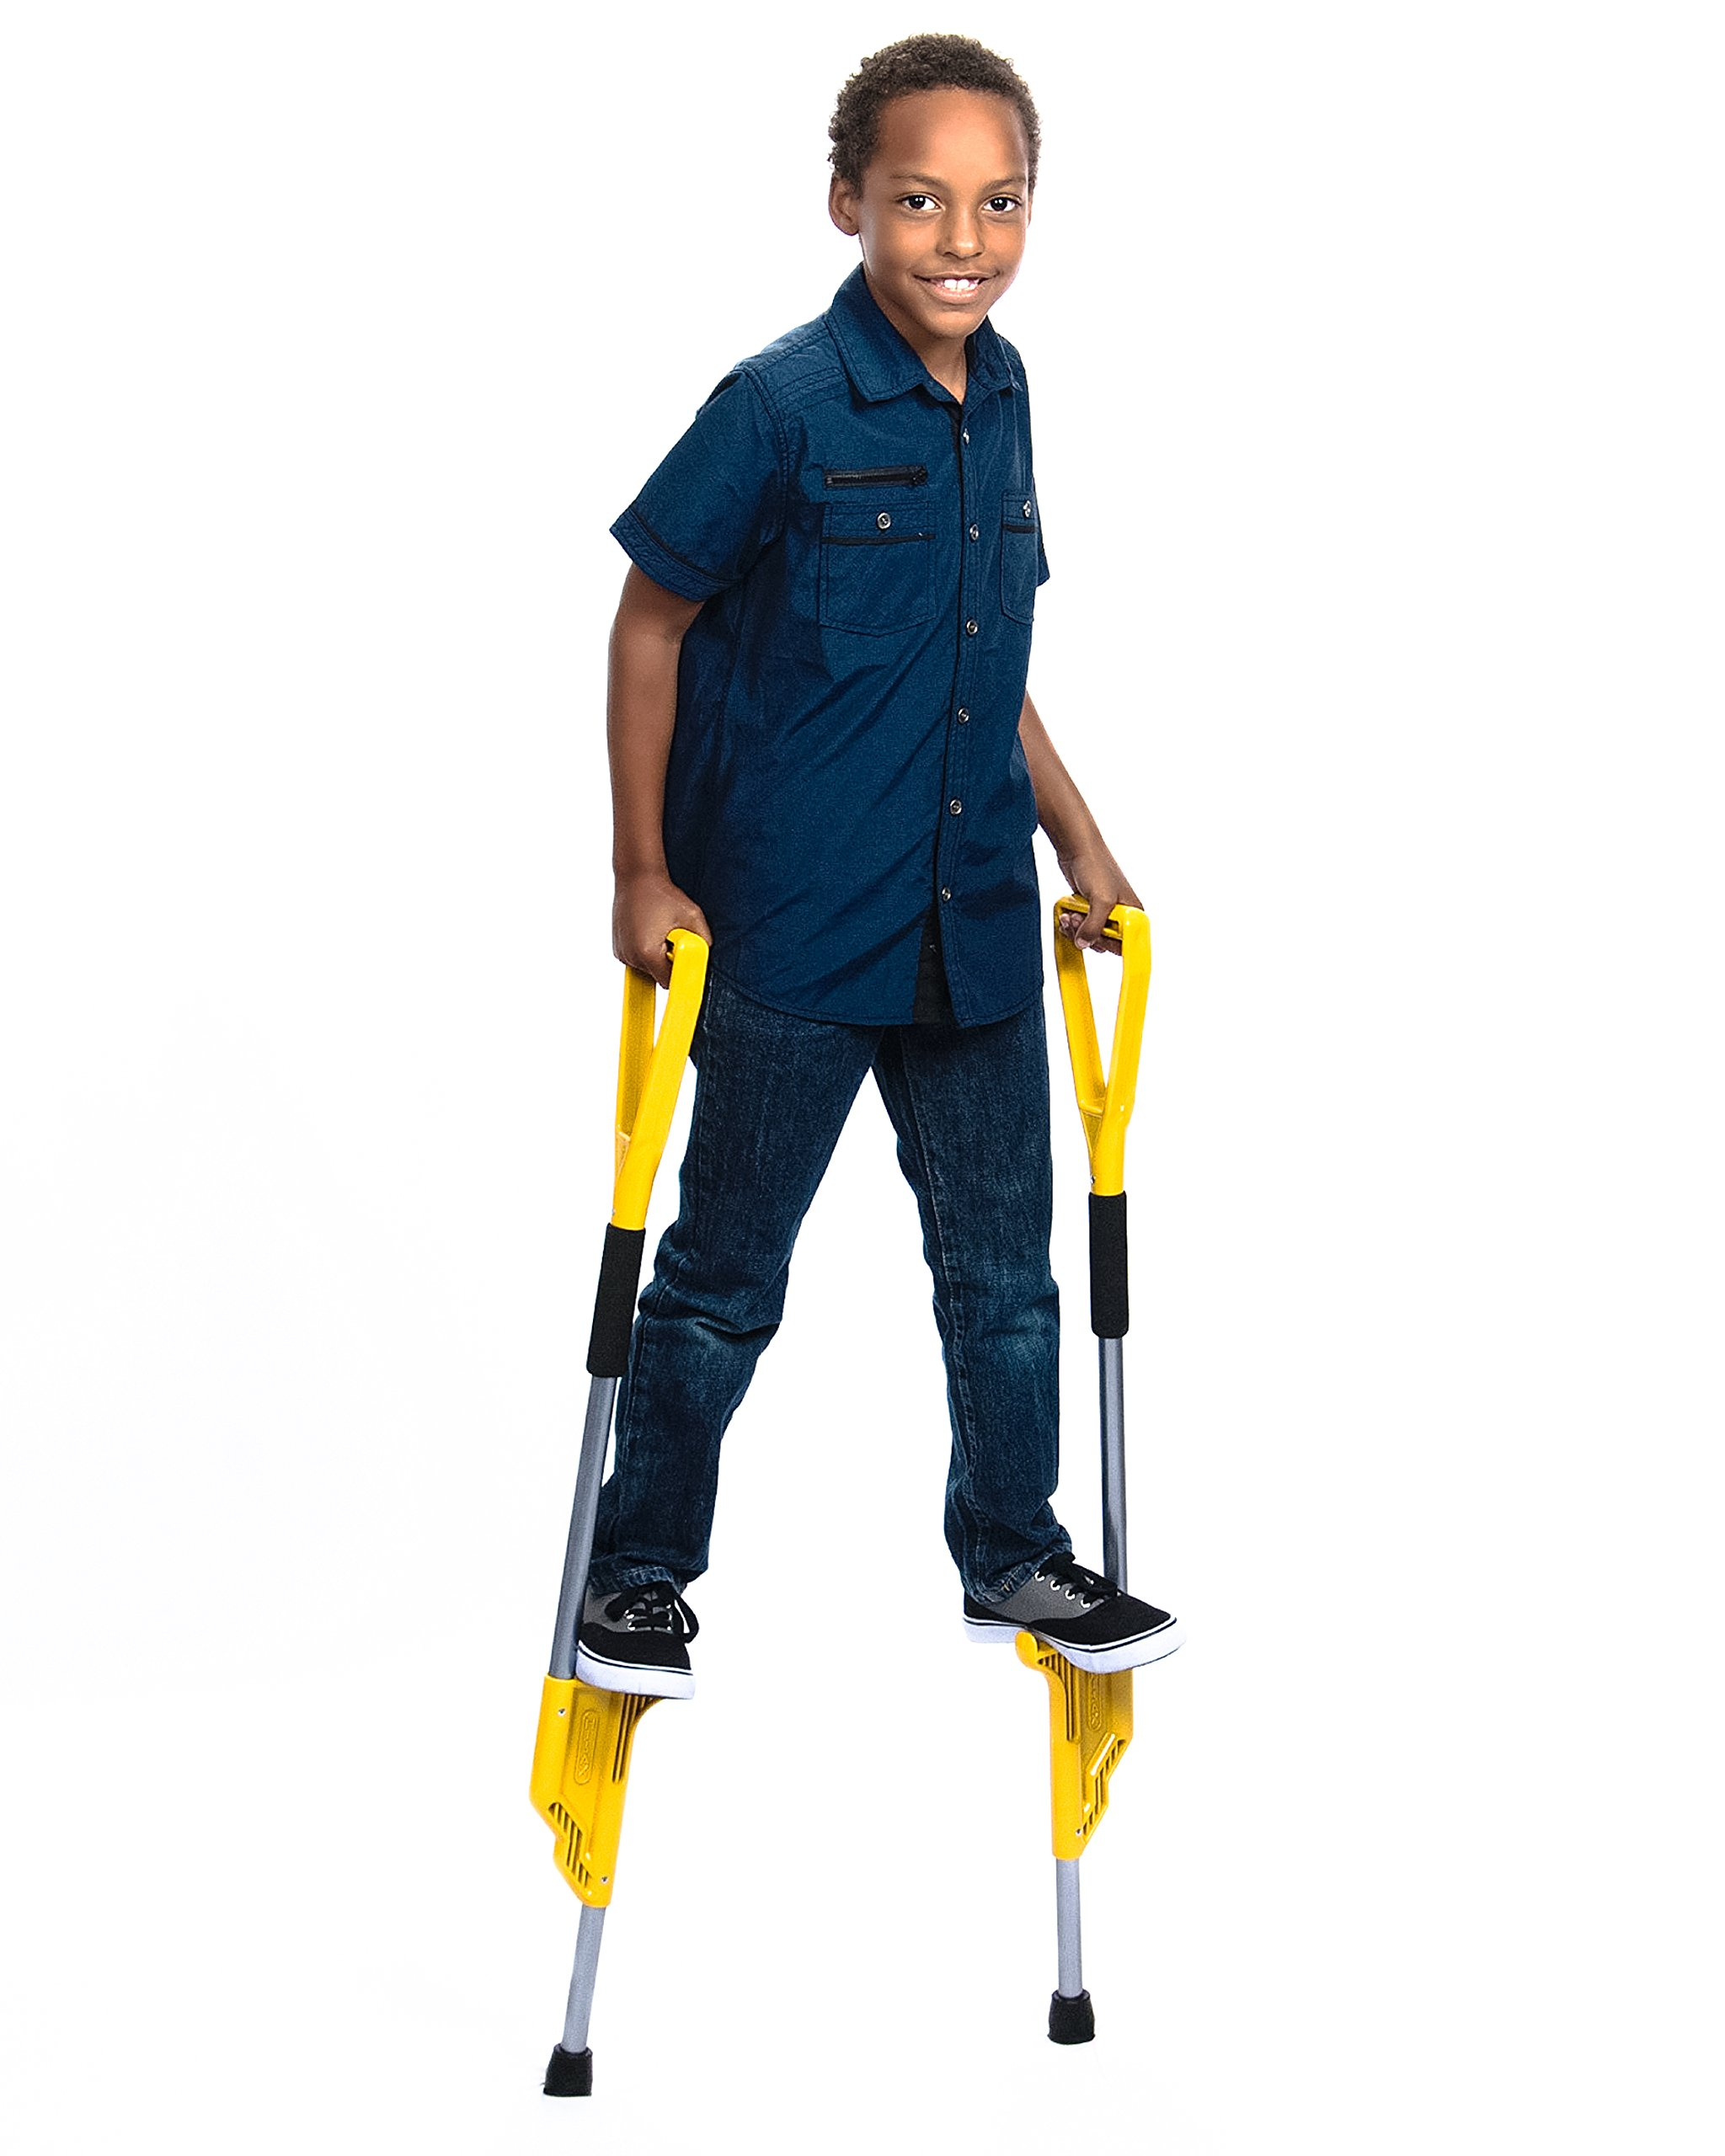 Extex Hijax Standard Size American Stilts for Active Kids (Platinum) by Extex